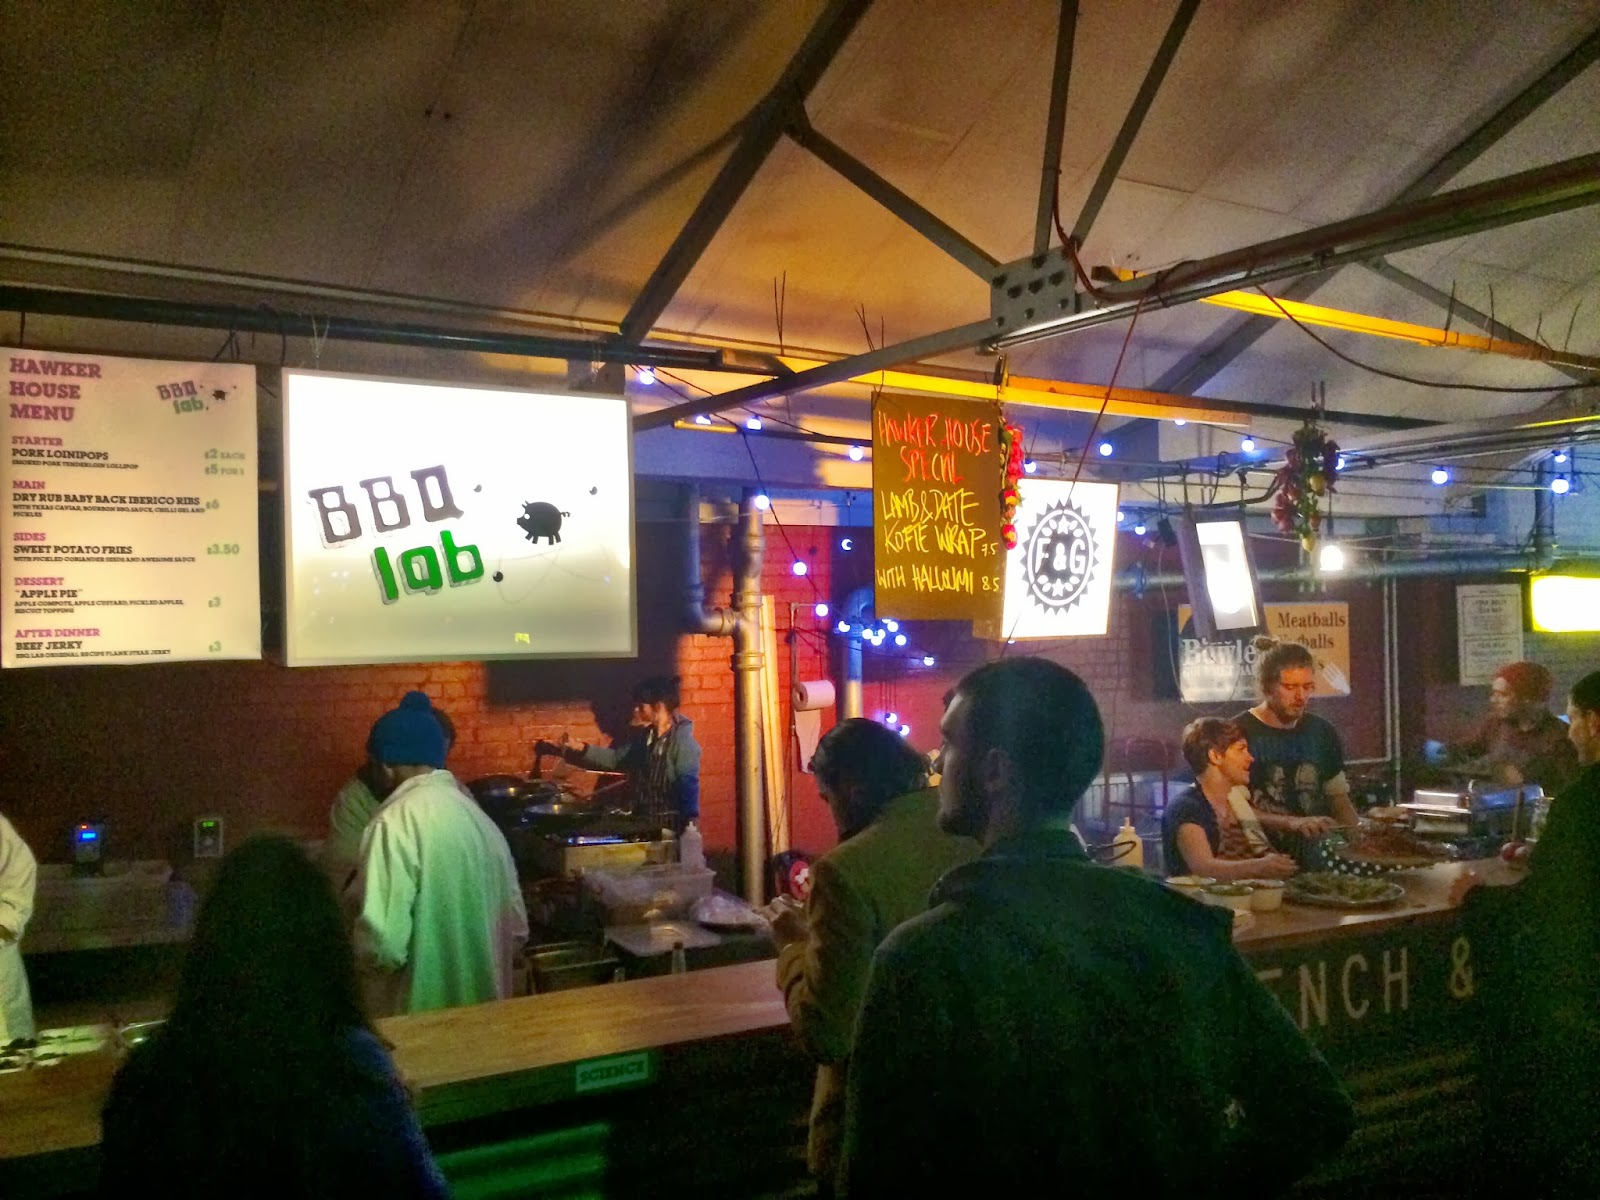 BBQ Lab and French & Grace at Hawker House Street Feast